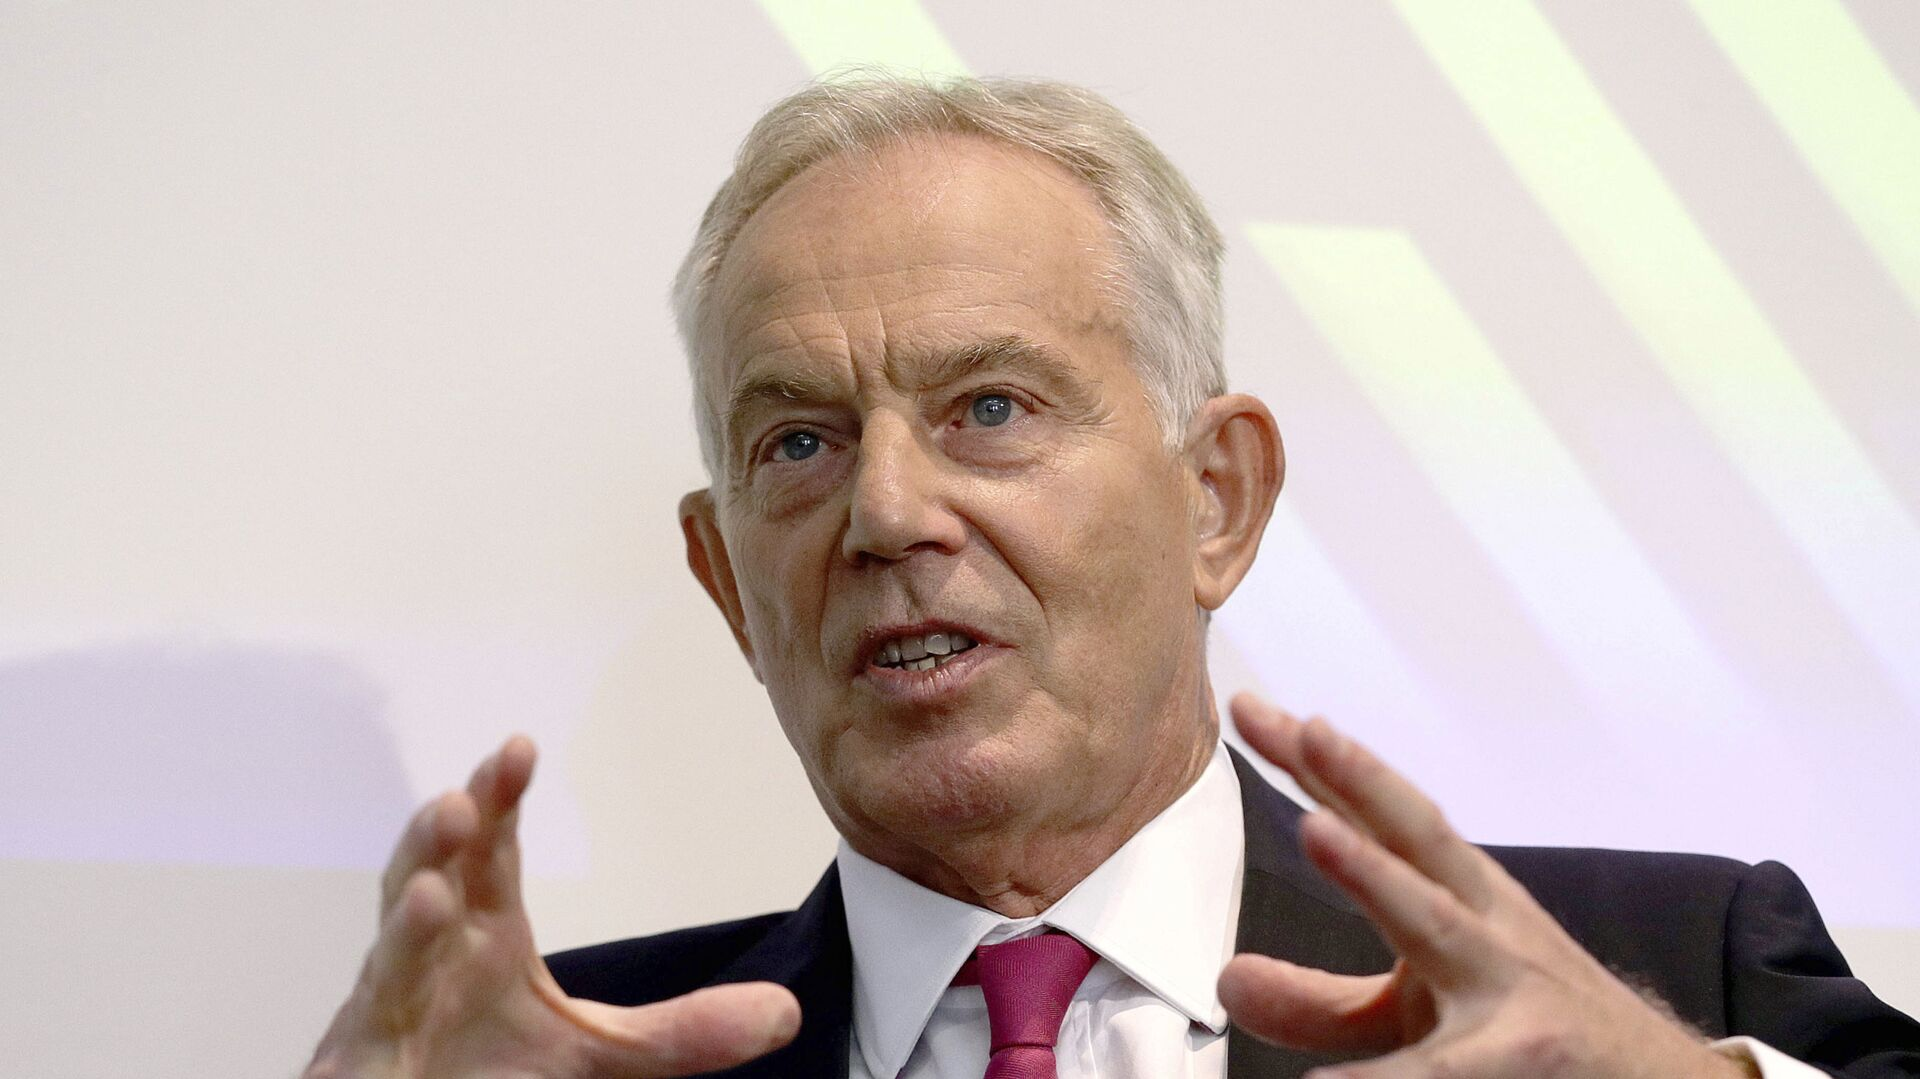 Former British prime minister Tony Blair gives a speech on Brexit at the Institute for Government in central London, on Monday 2 September 2019. - Sputnik International, 1920, 06.09.2021